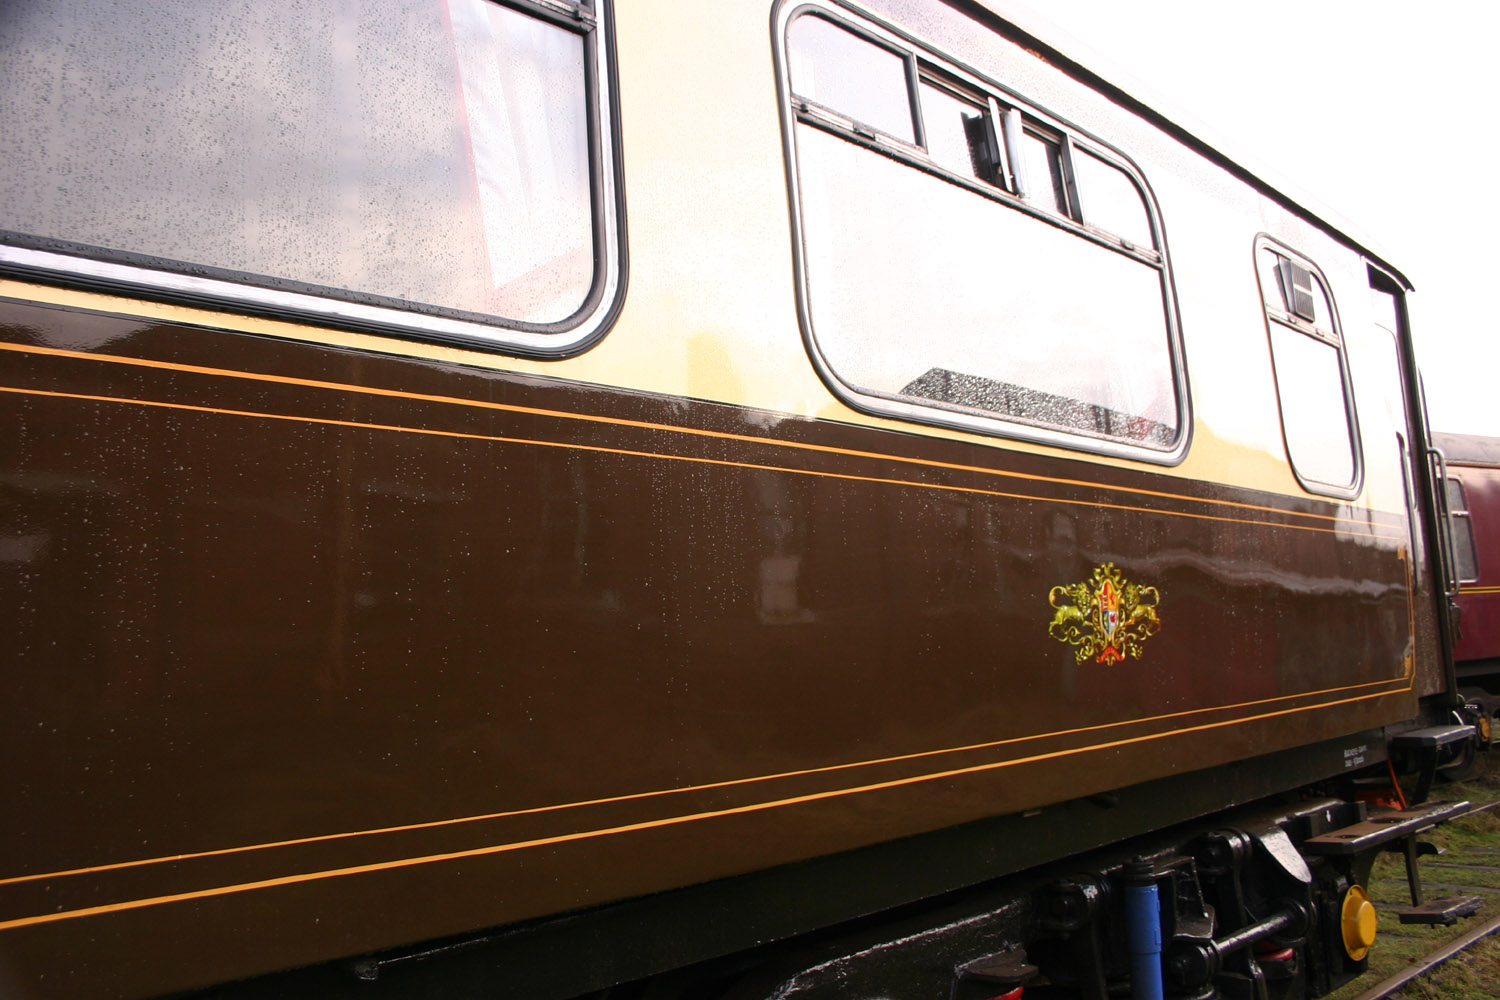 Pullman Coach by Phil Marsh